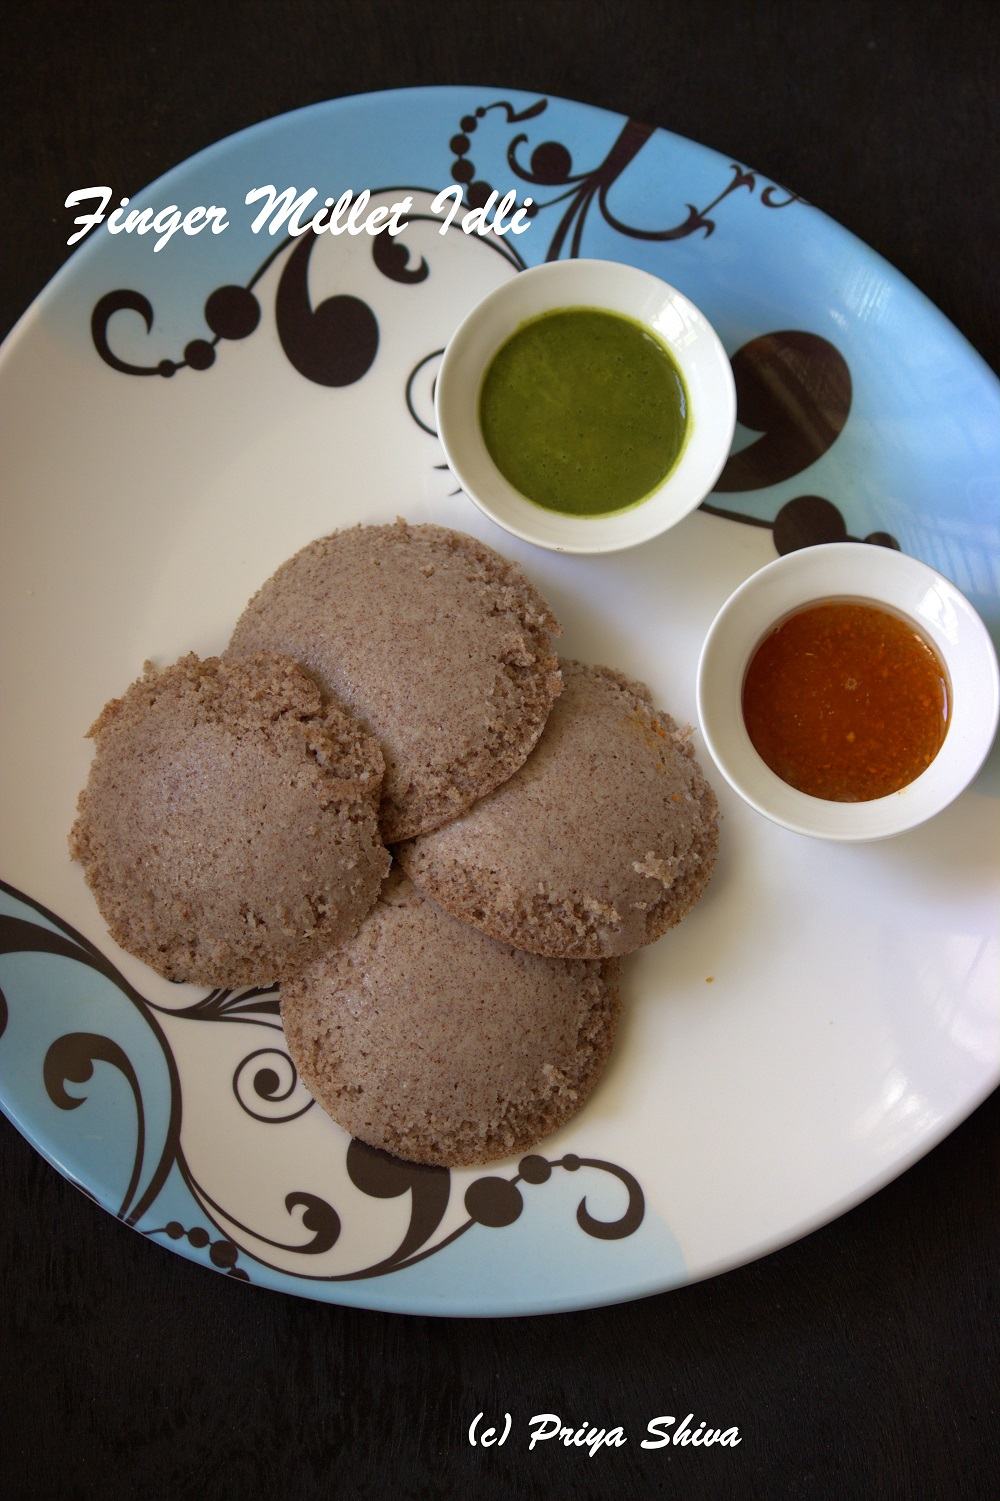 gluten free, oil free made with ragi flour.